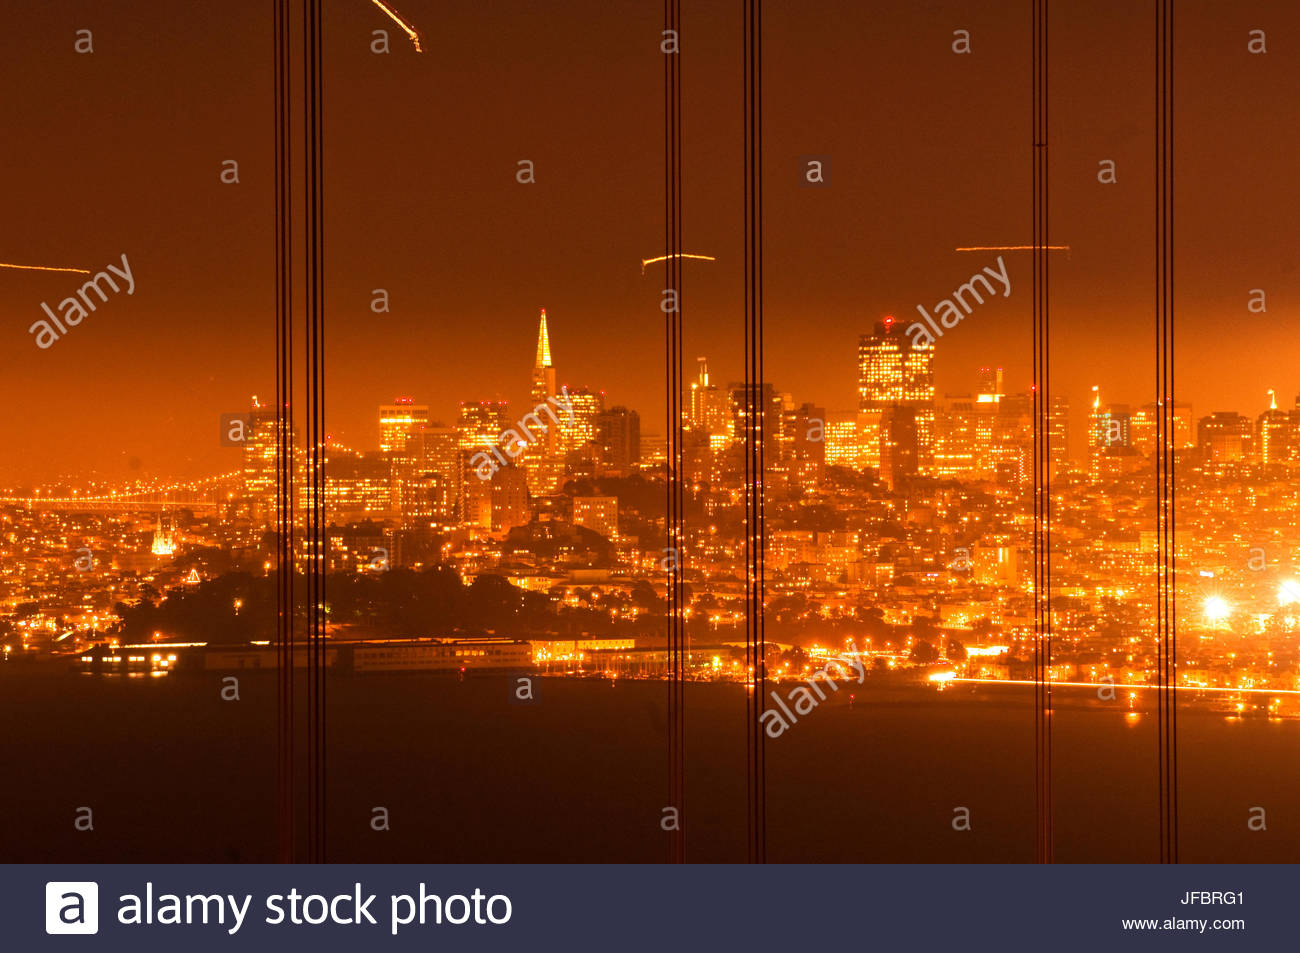 Golden Gate Bridge, shortly after sunset, shot from the Marin Headlands. - Stock Image